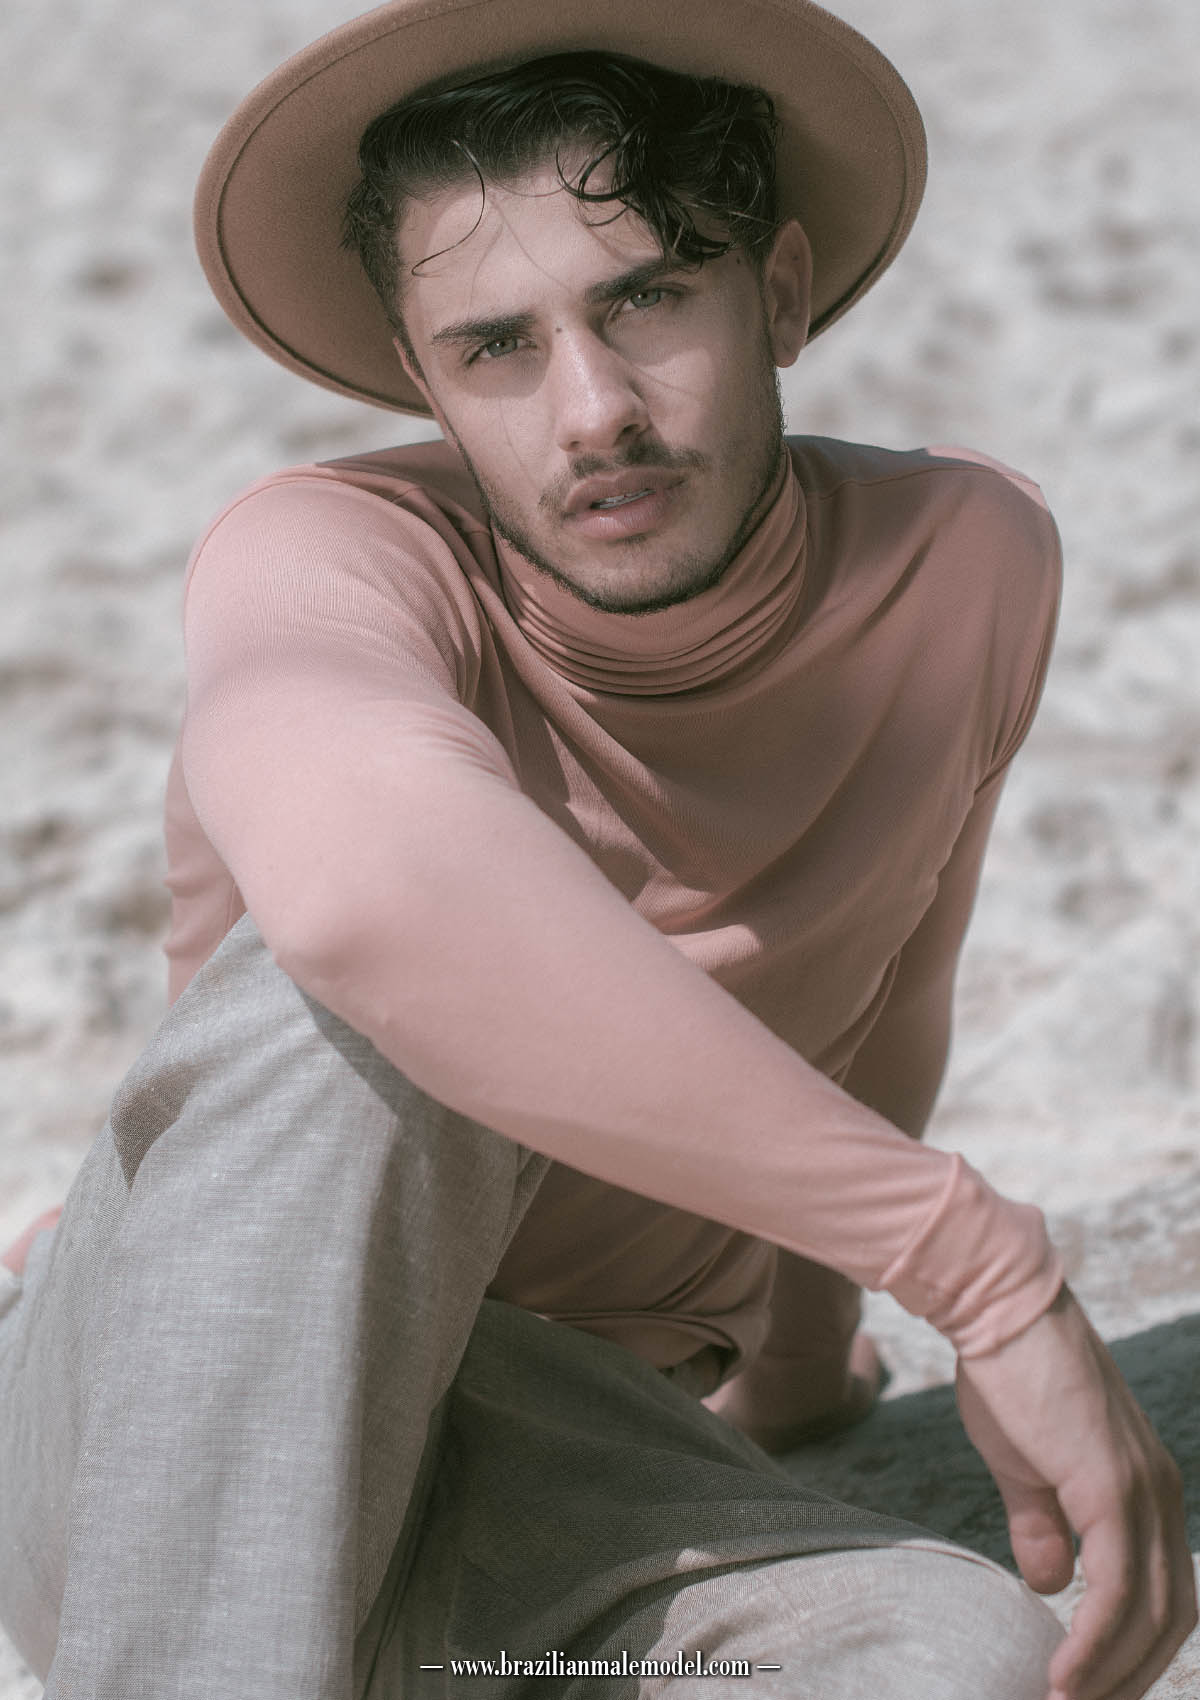 ARAN BUENNO BY FERNANDA CÂNDIDO FOR BRAZILIAN MALE MODEL